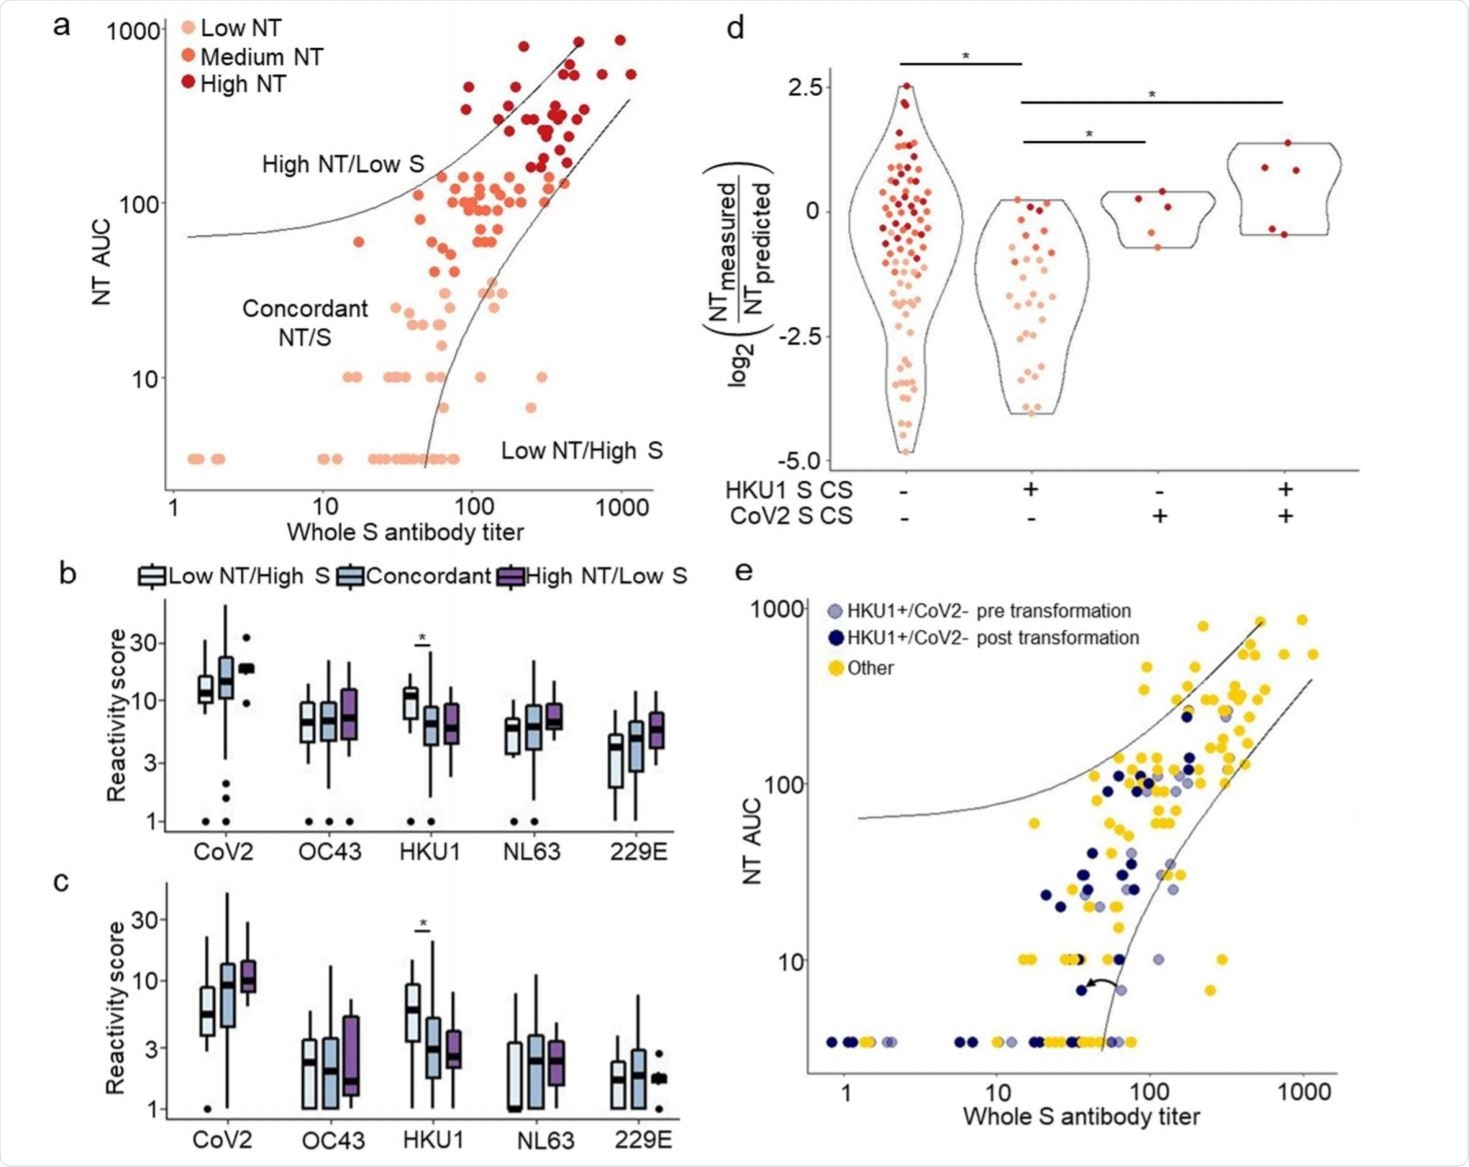 VirScan identifies features associated with discordance between whole spike titer and NT AUC